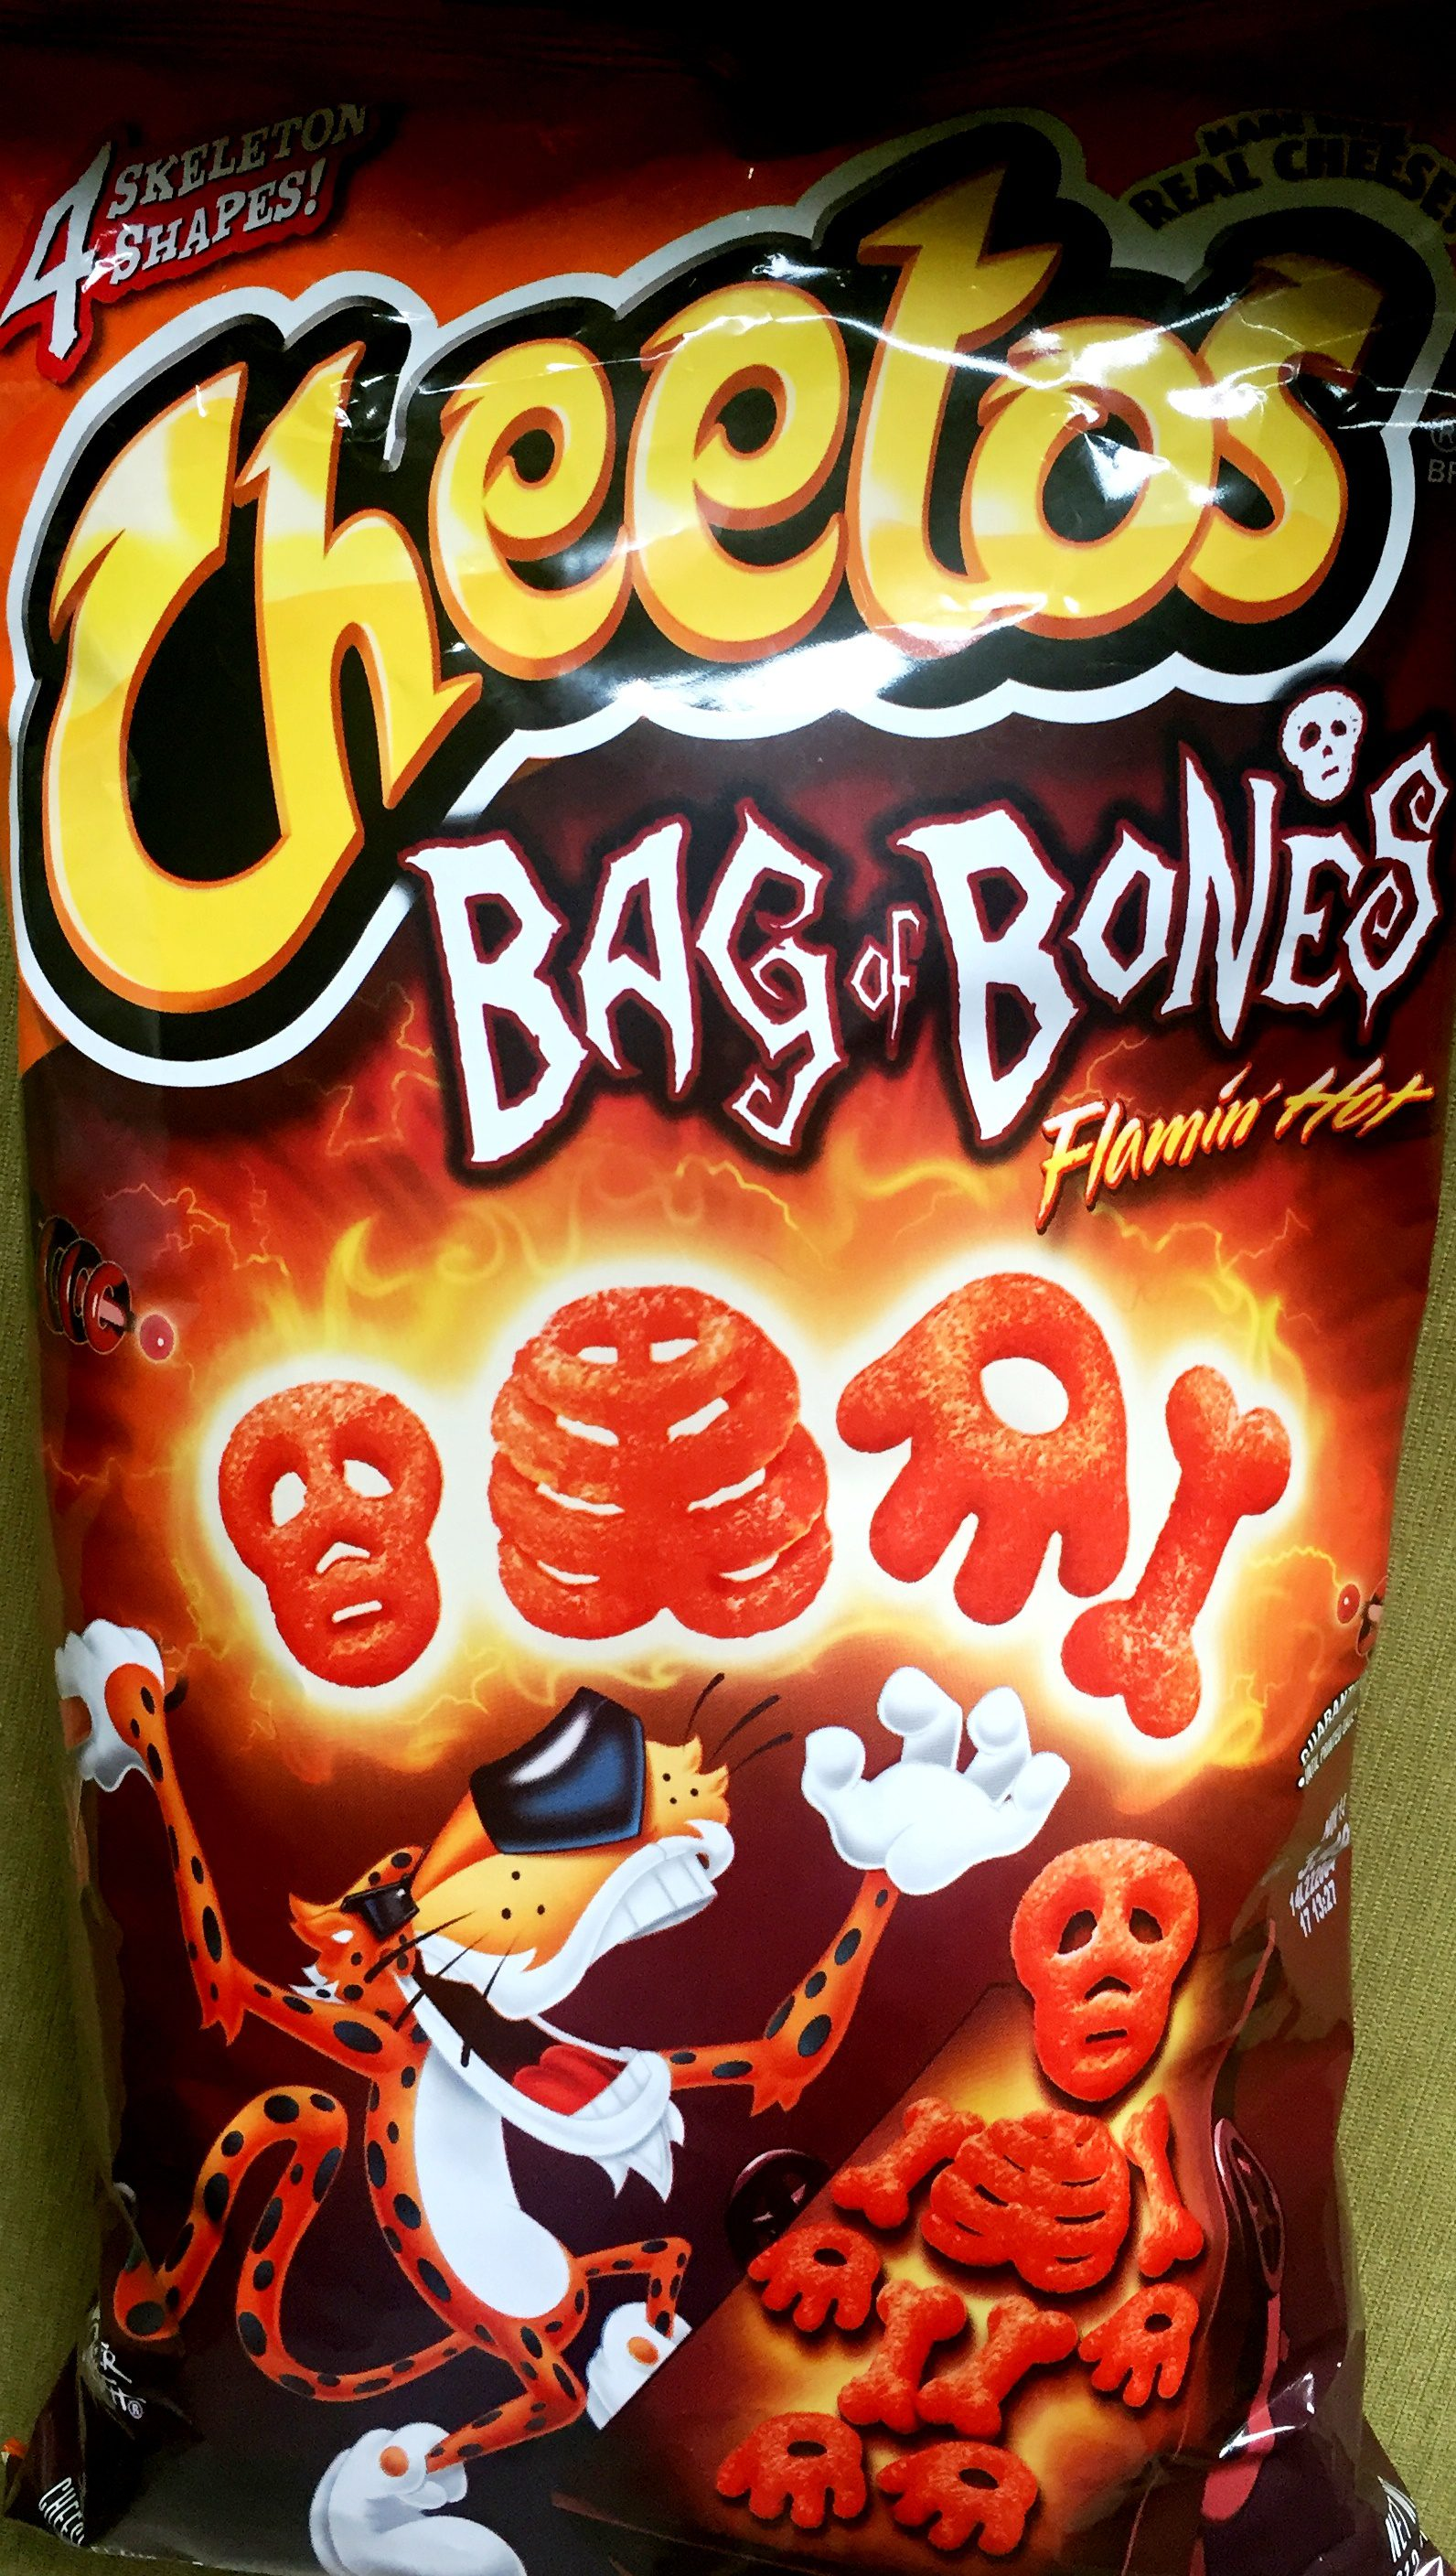 review cheetos bag of bones flamin chip review